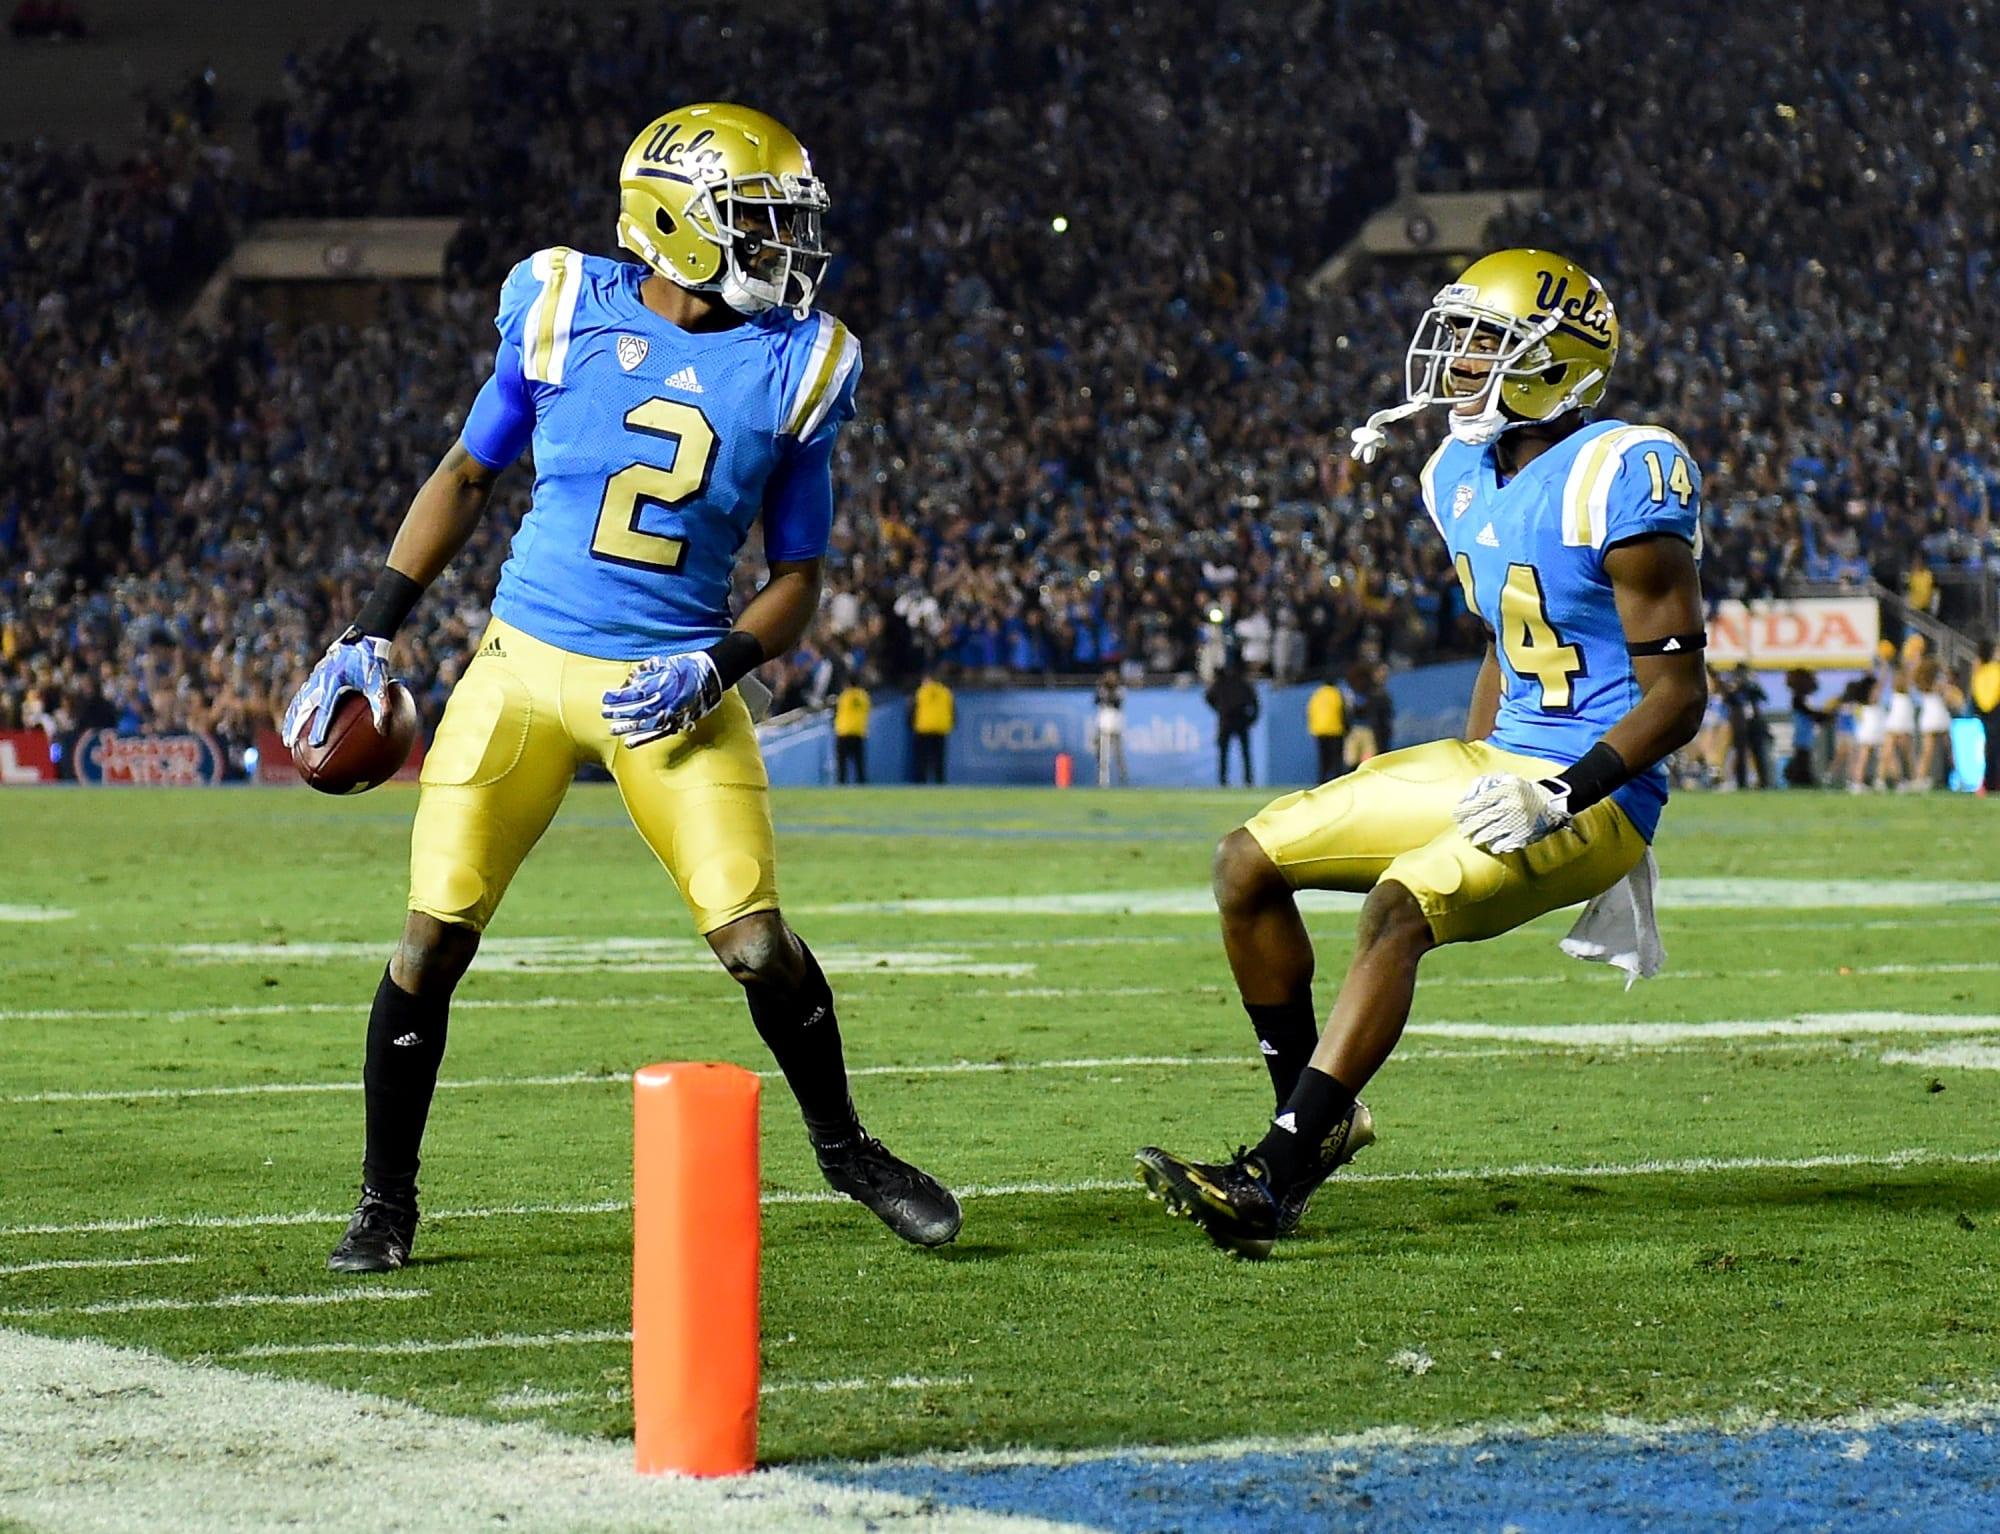 UCLA Football: Have the new jerseys been leaked?